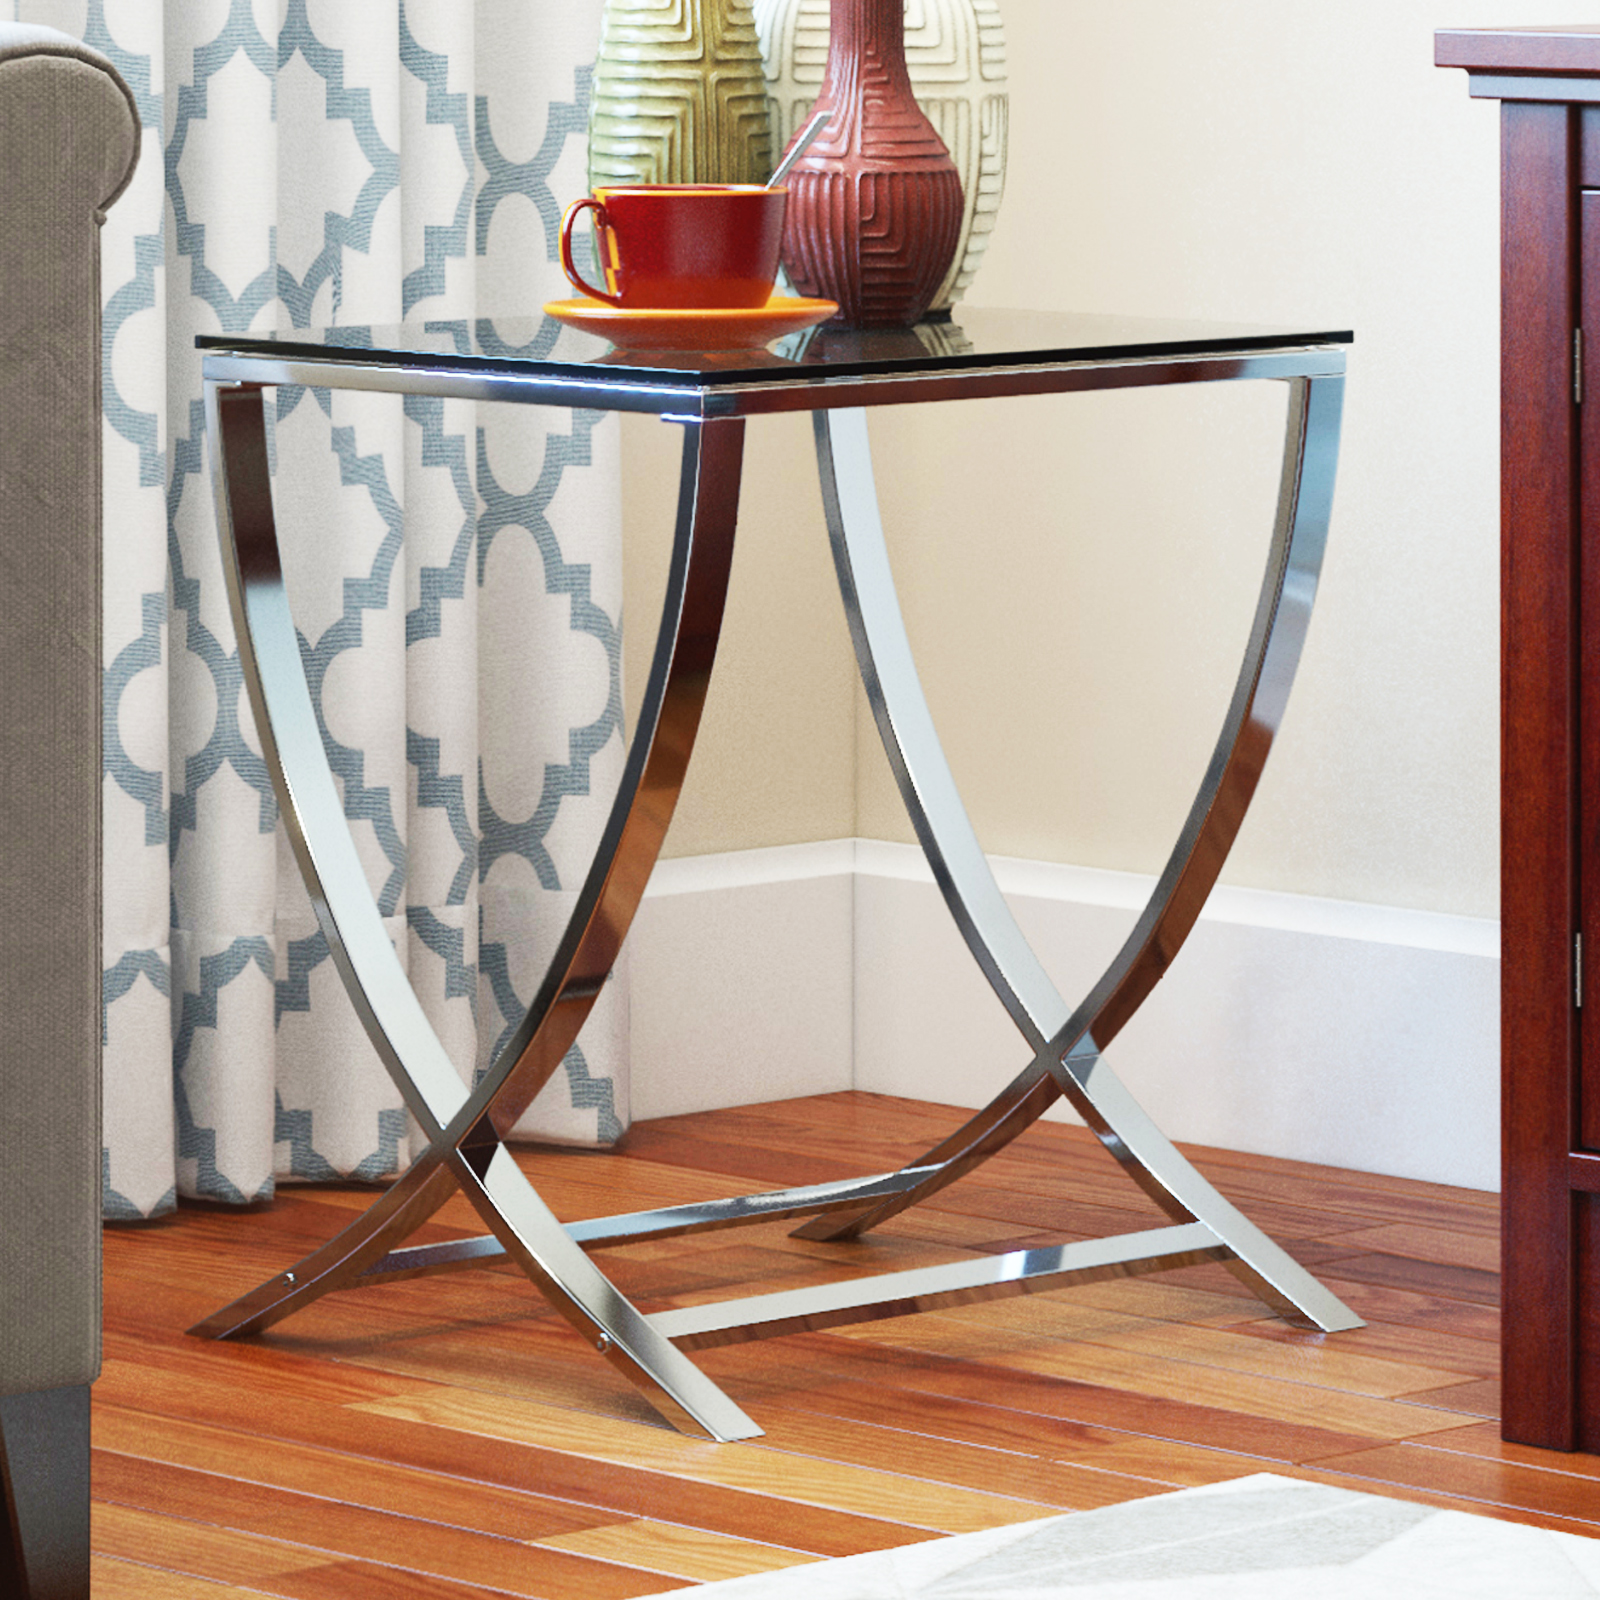 Vivien Gl Small Accent End Side Table Living Room Coffee Sofa Nightstand Chrome Finish